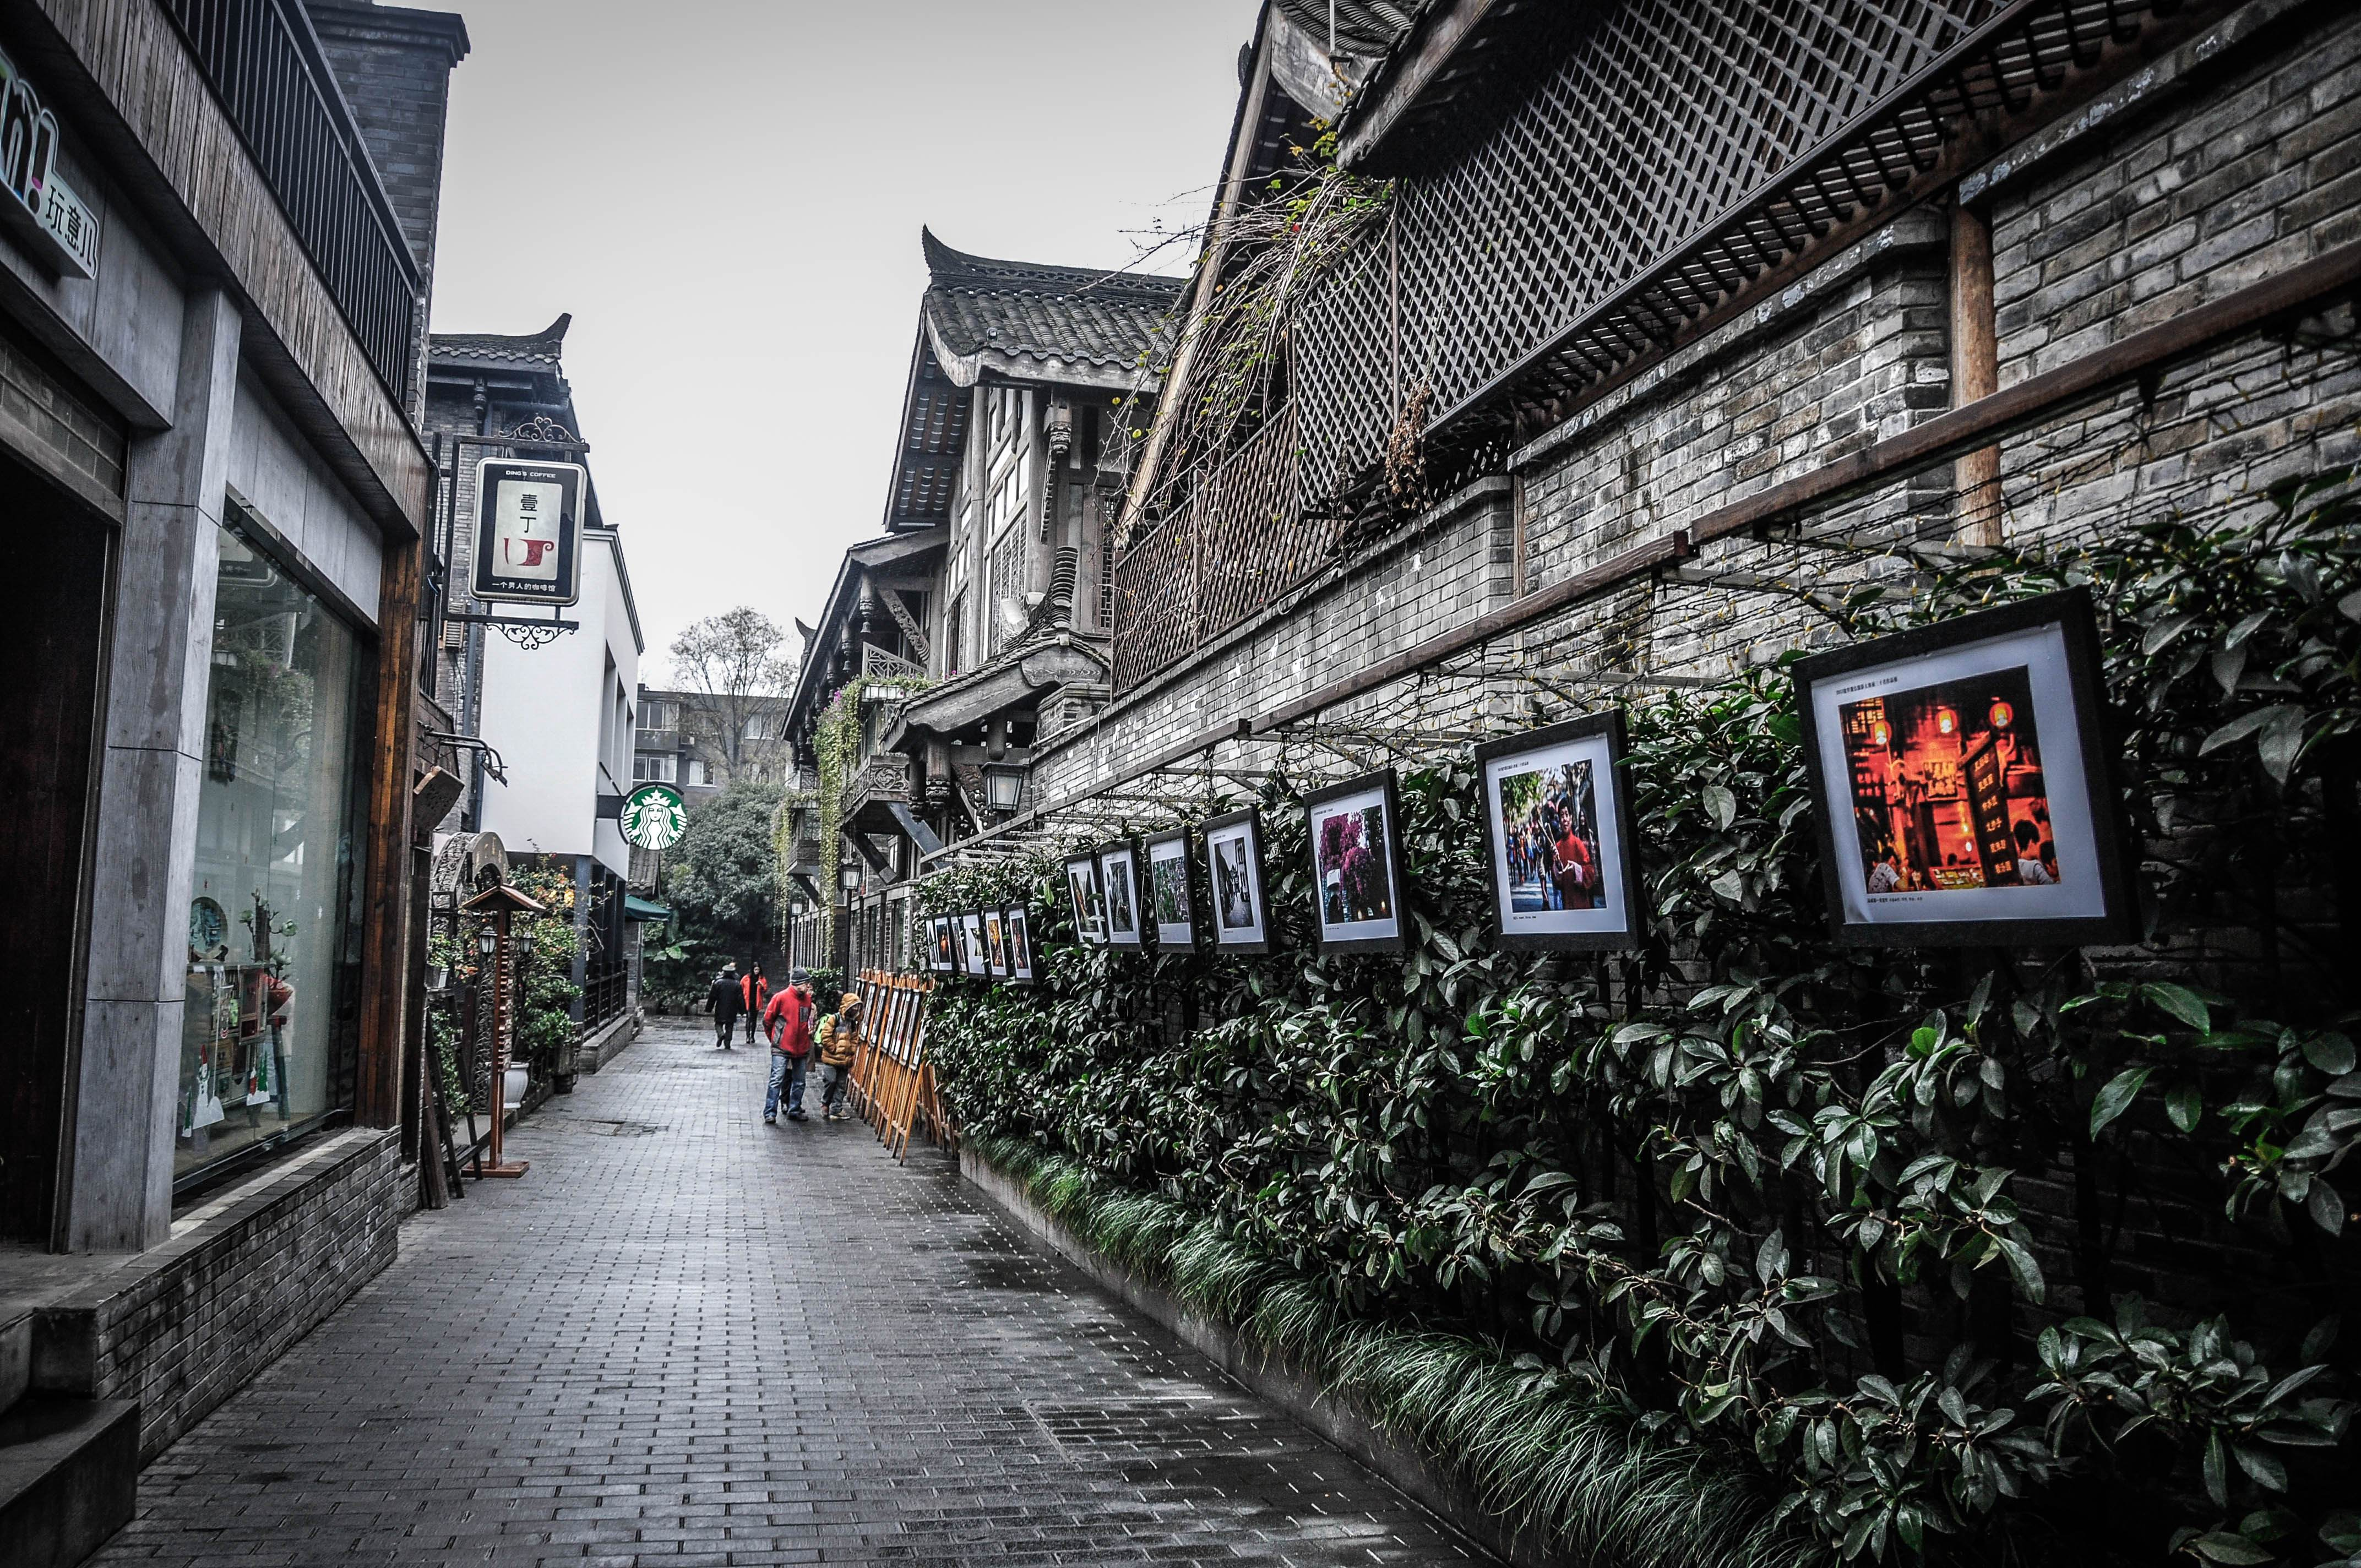 Photograph of Chengdu district - China Travel